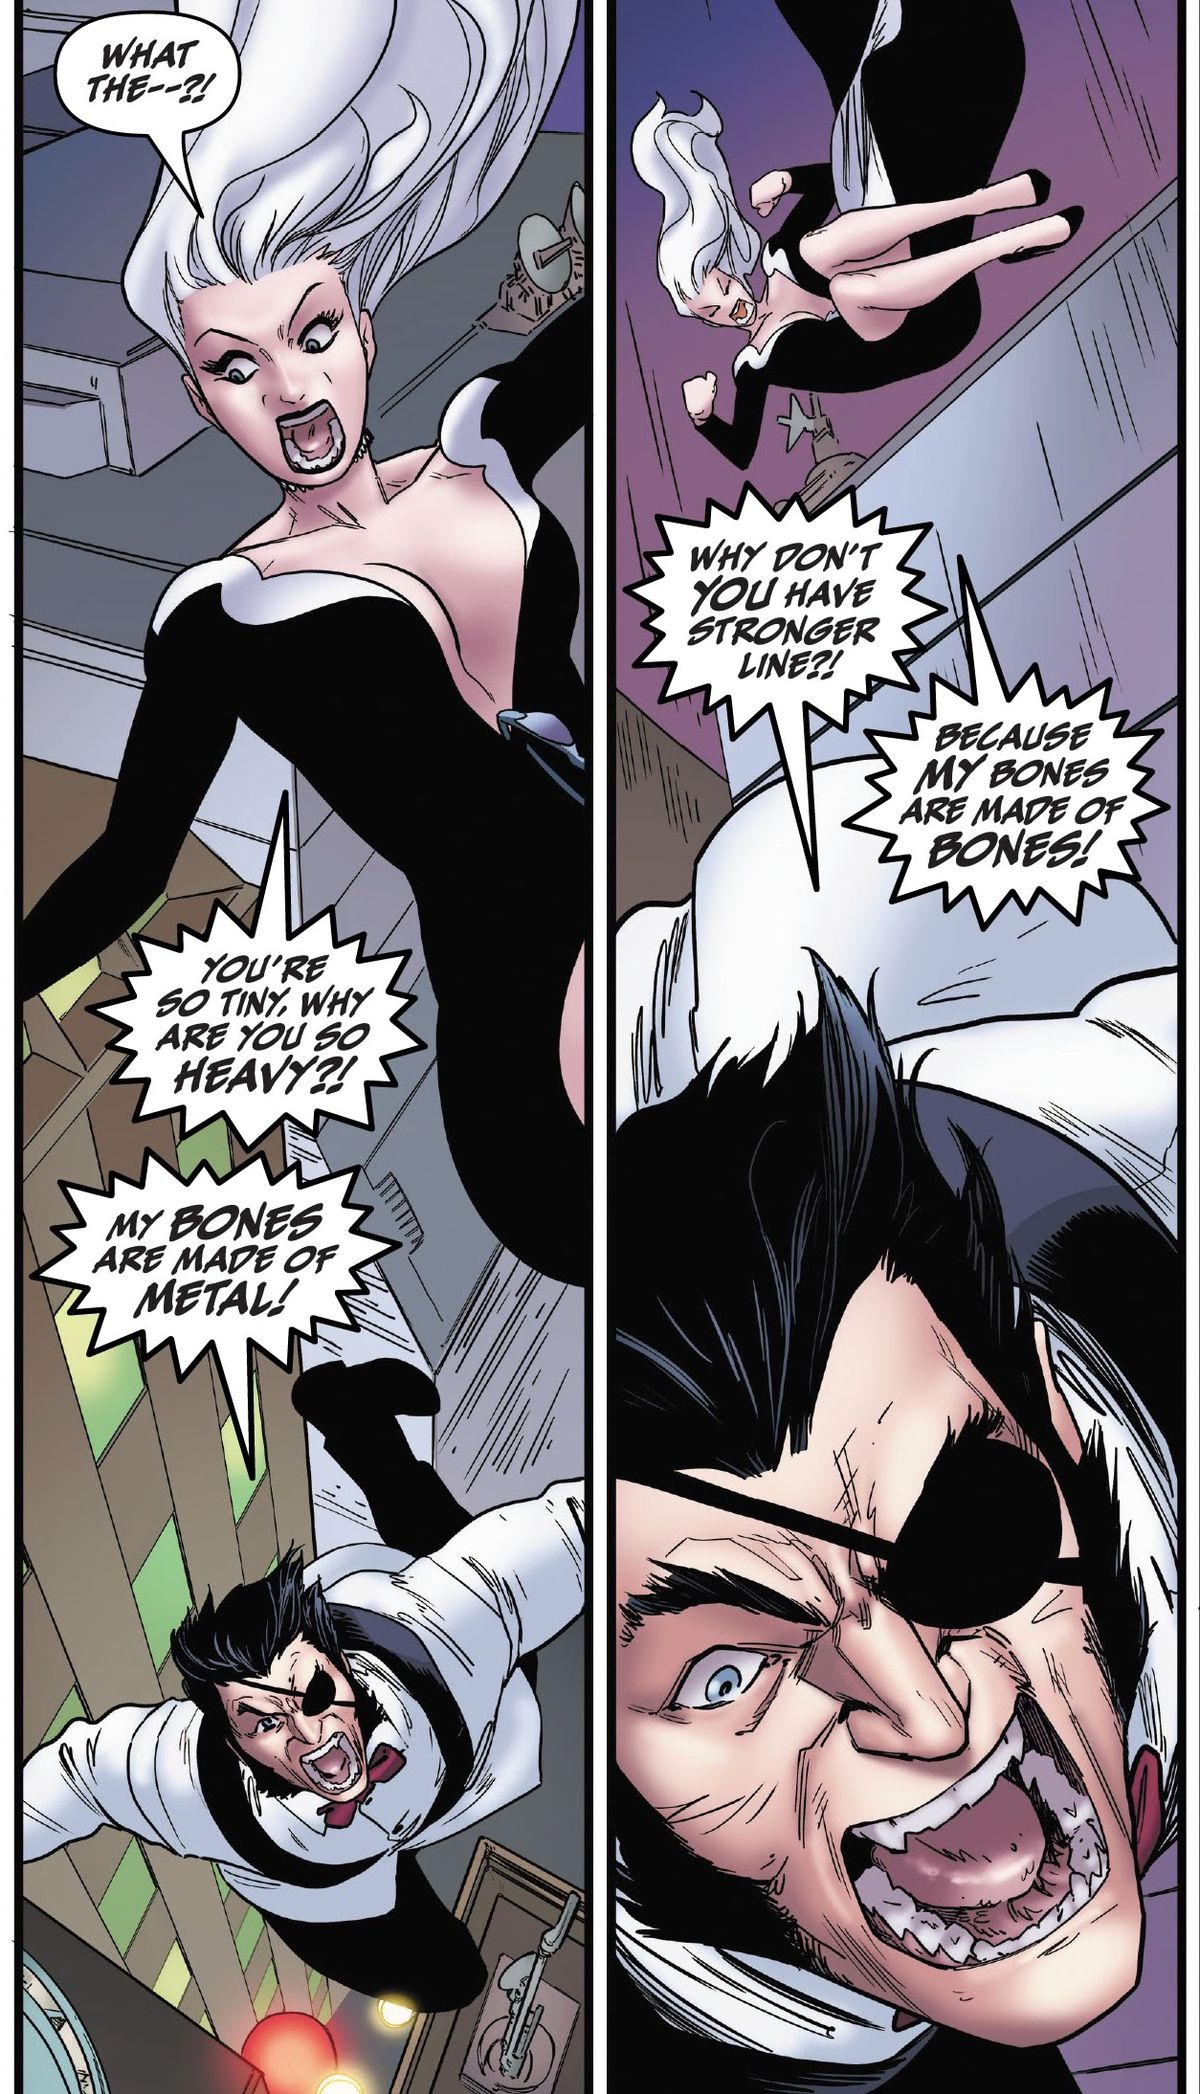 """Black Cat and Wolverine (dressed as his Madriporian alter ego Patch), fall from a great height, while yelling. """"Why are you so heavy?"""" """"My bones are made of metal!"""" """"Why don't you have a stronger line?!"""" """"Because my bones are made of bones!"""" in Black Cat #10, Marvel Comics (2020)."""